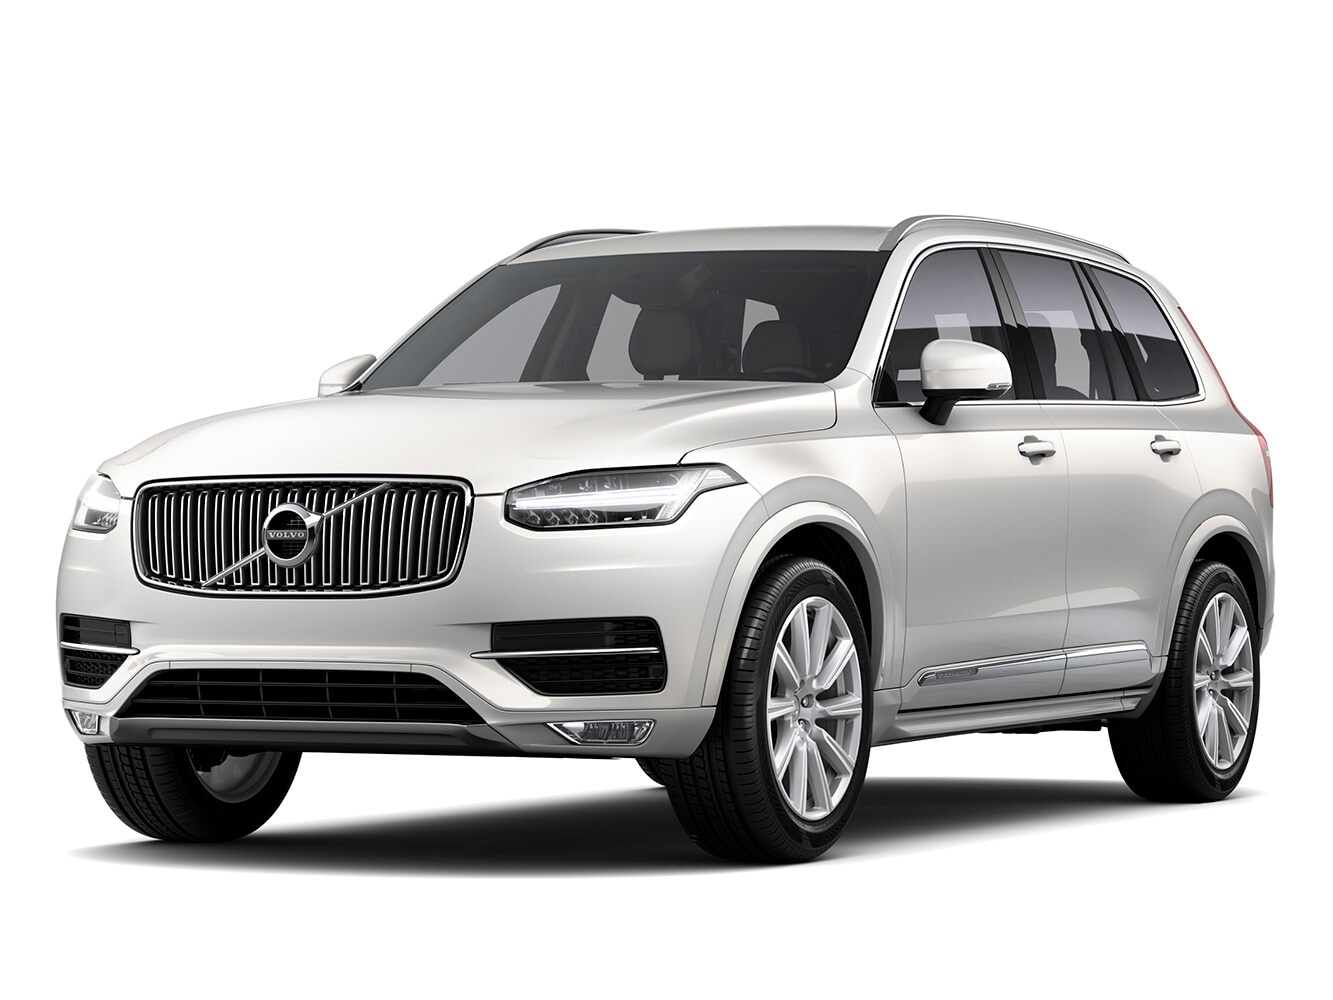 Versión XC90 Inscription